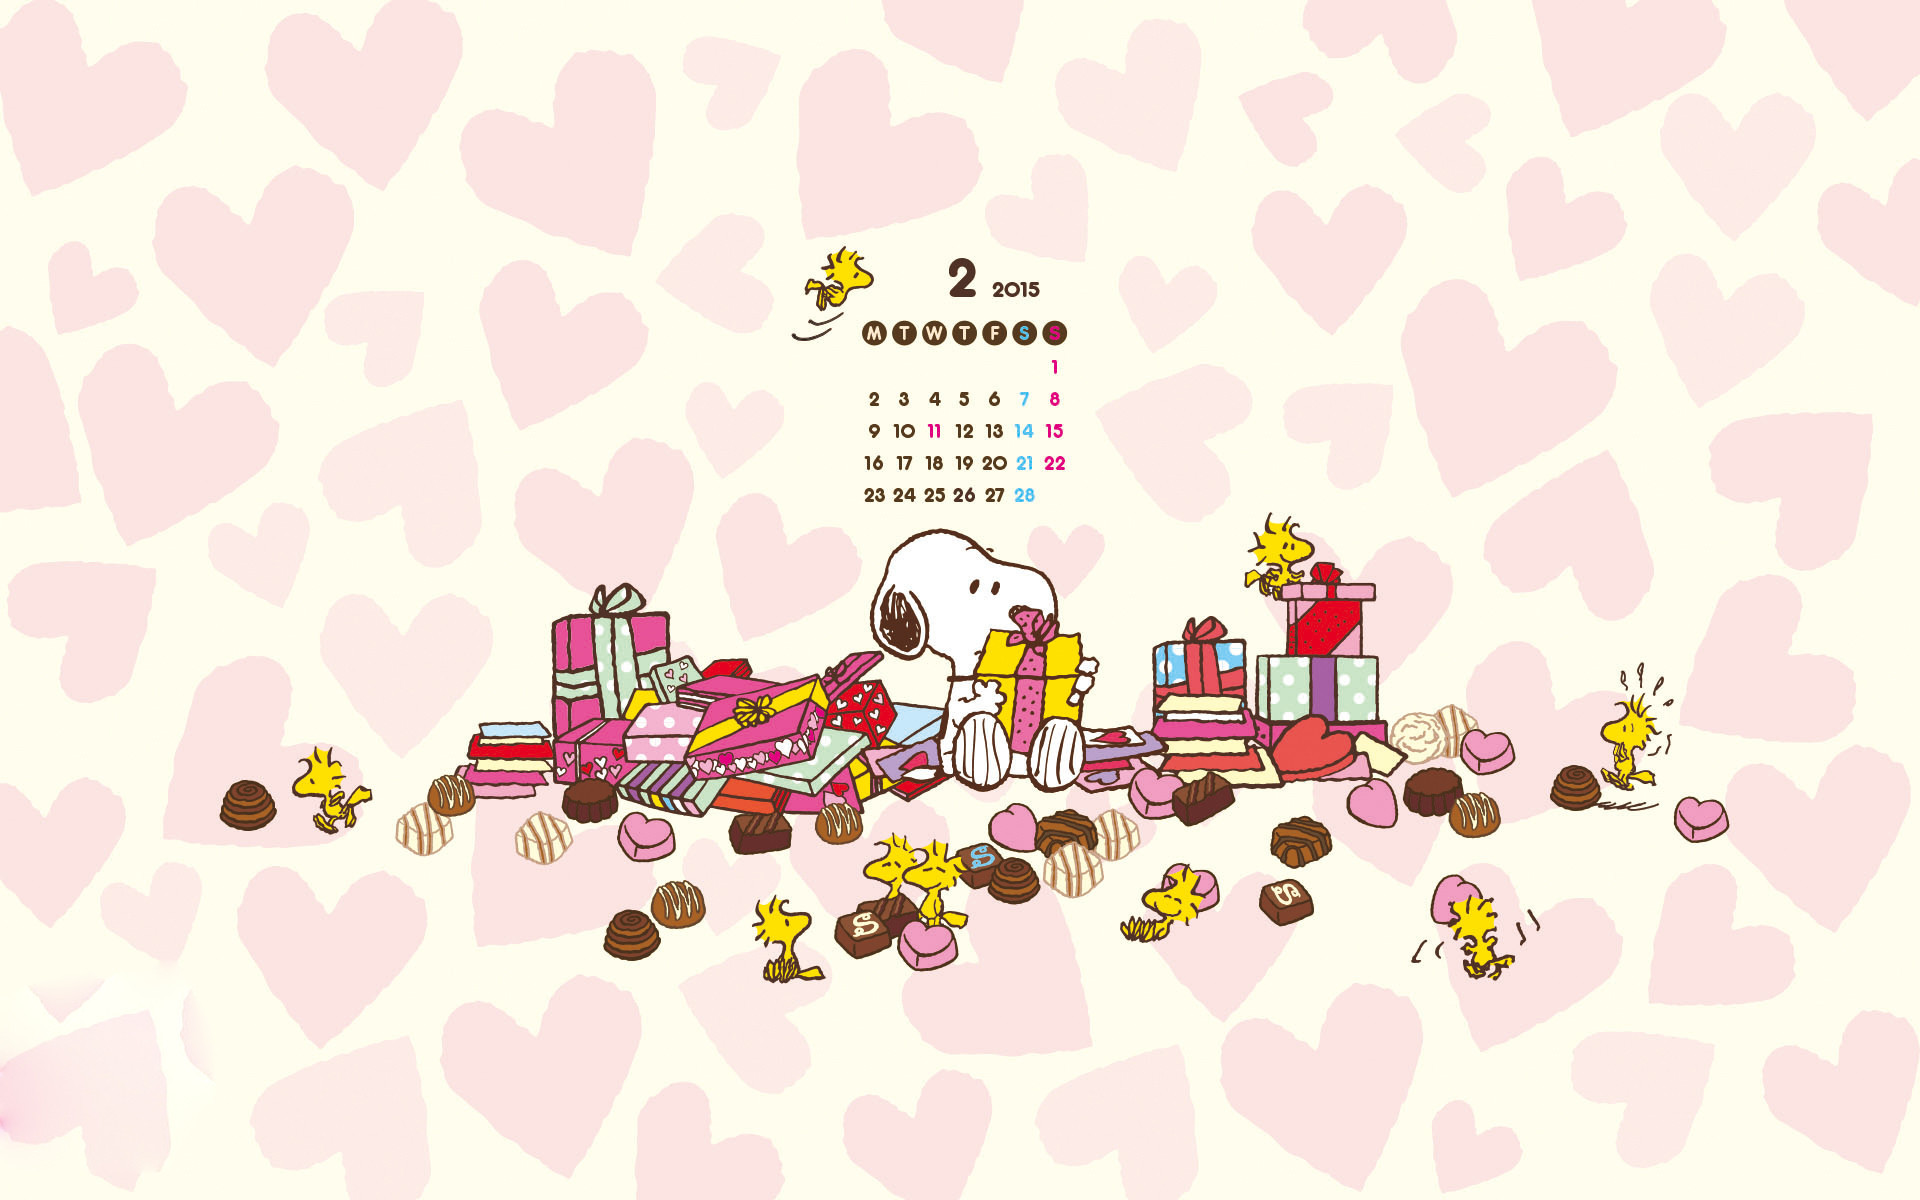 Res: 1920x1200, 1920x1080 Thanksgiving Snoopy Wallpapers (30 Wallpapers)